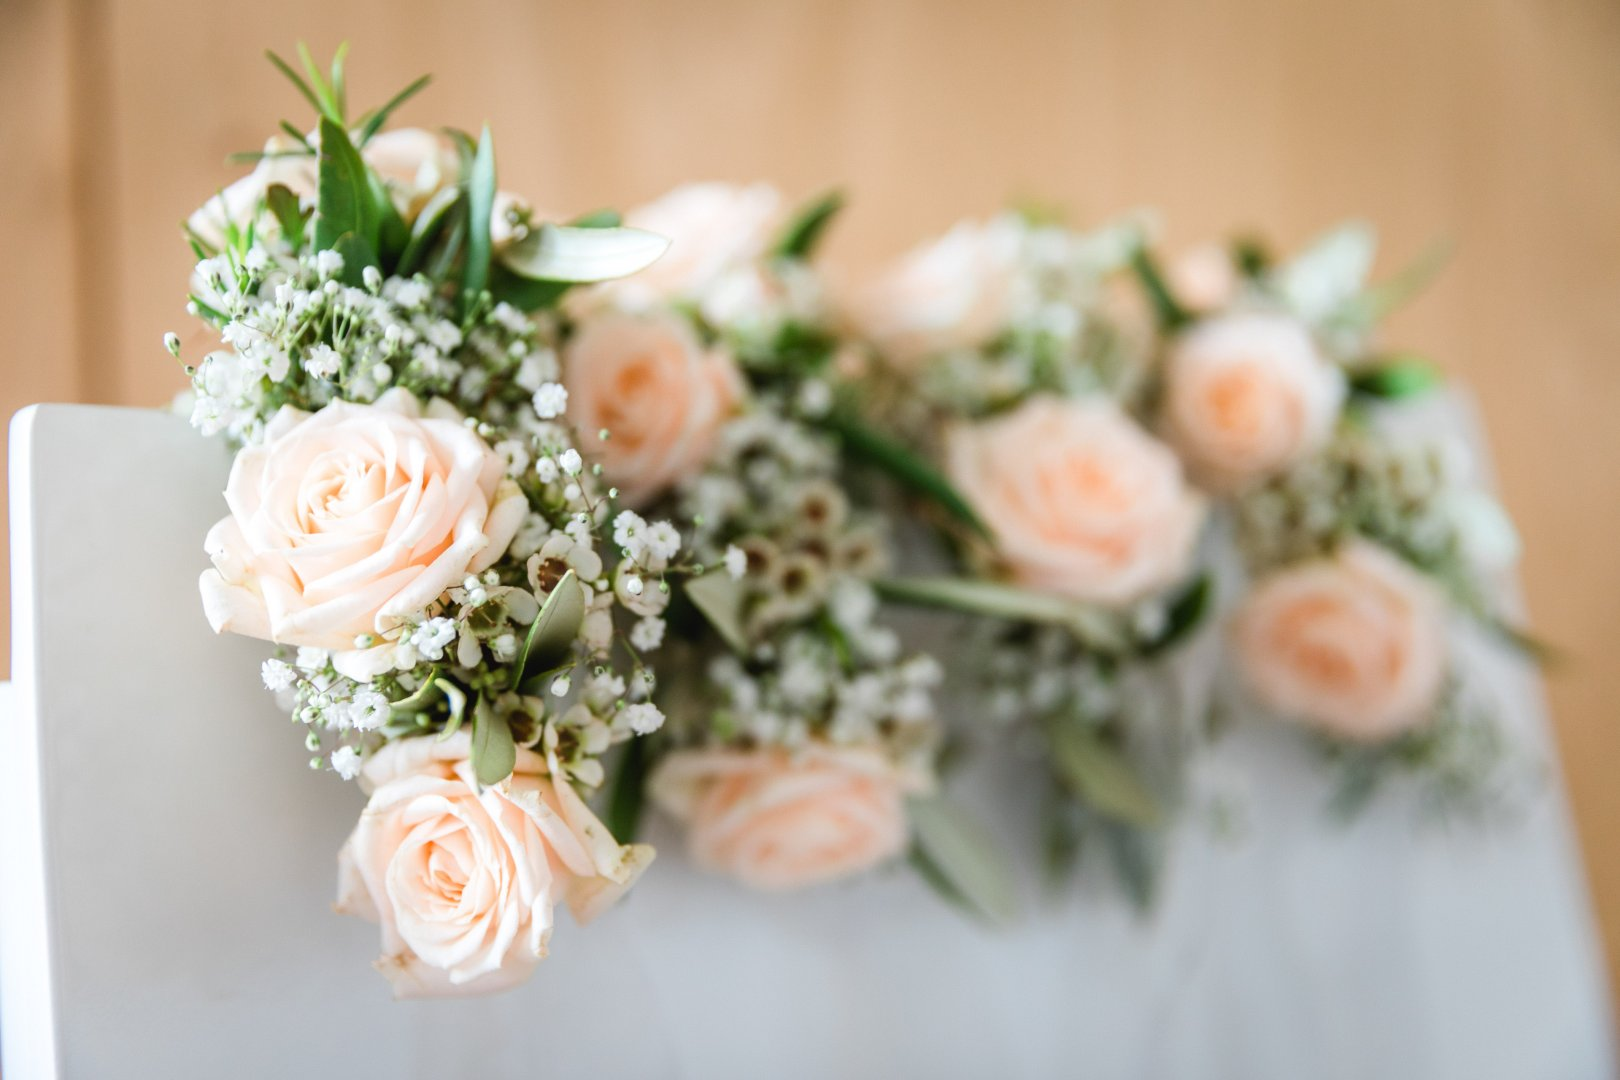 Flower Bouquet Flower Arranging Floristry White Photograph Garden roses Rose Floral design Plant Cut flowers Pink Rose family Yellow Petal Artificial flower Rose order Flowering plant Centrepiece Ceremony Artwork Wedding ceremony supply Wildflower